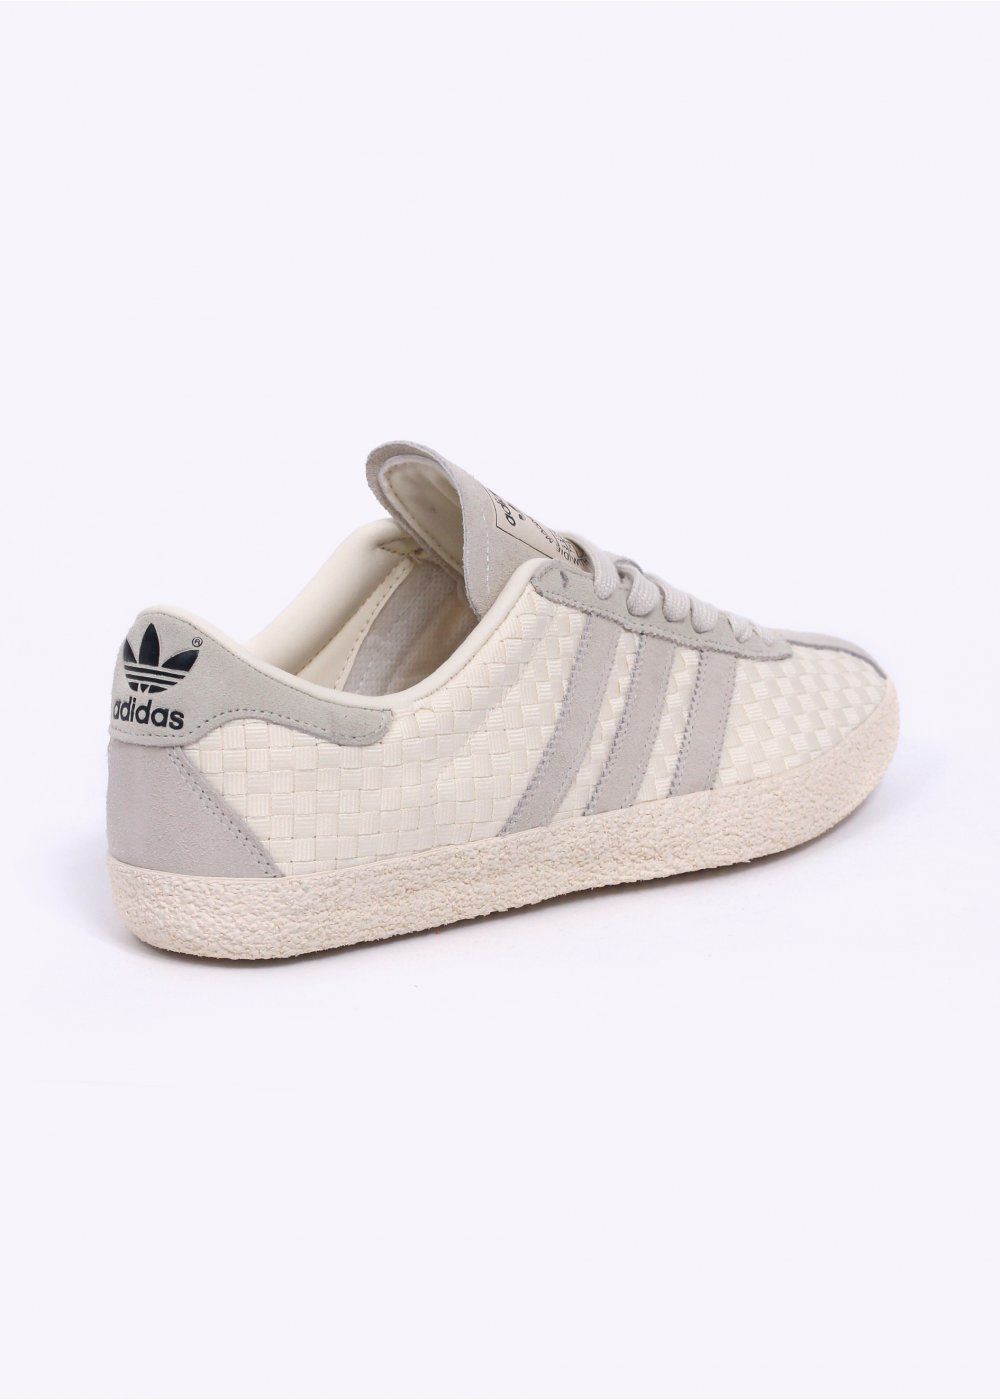 Adidas Originals Gazelle 70 S Sneaker UK 7.5 Crema Weave M19619